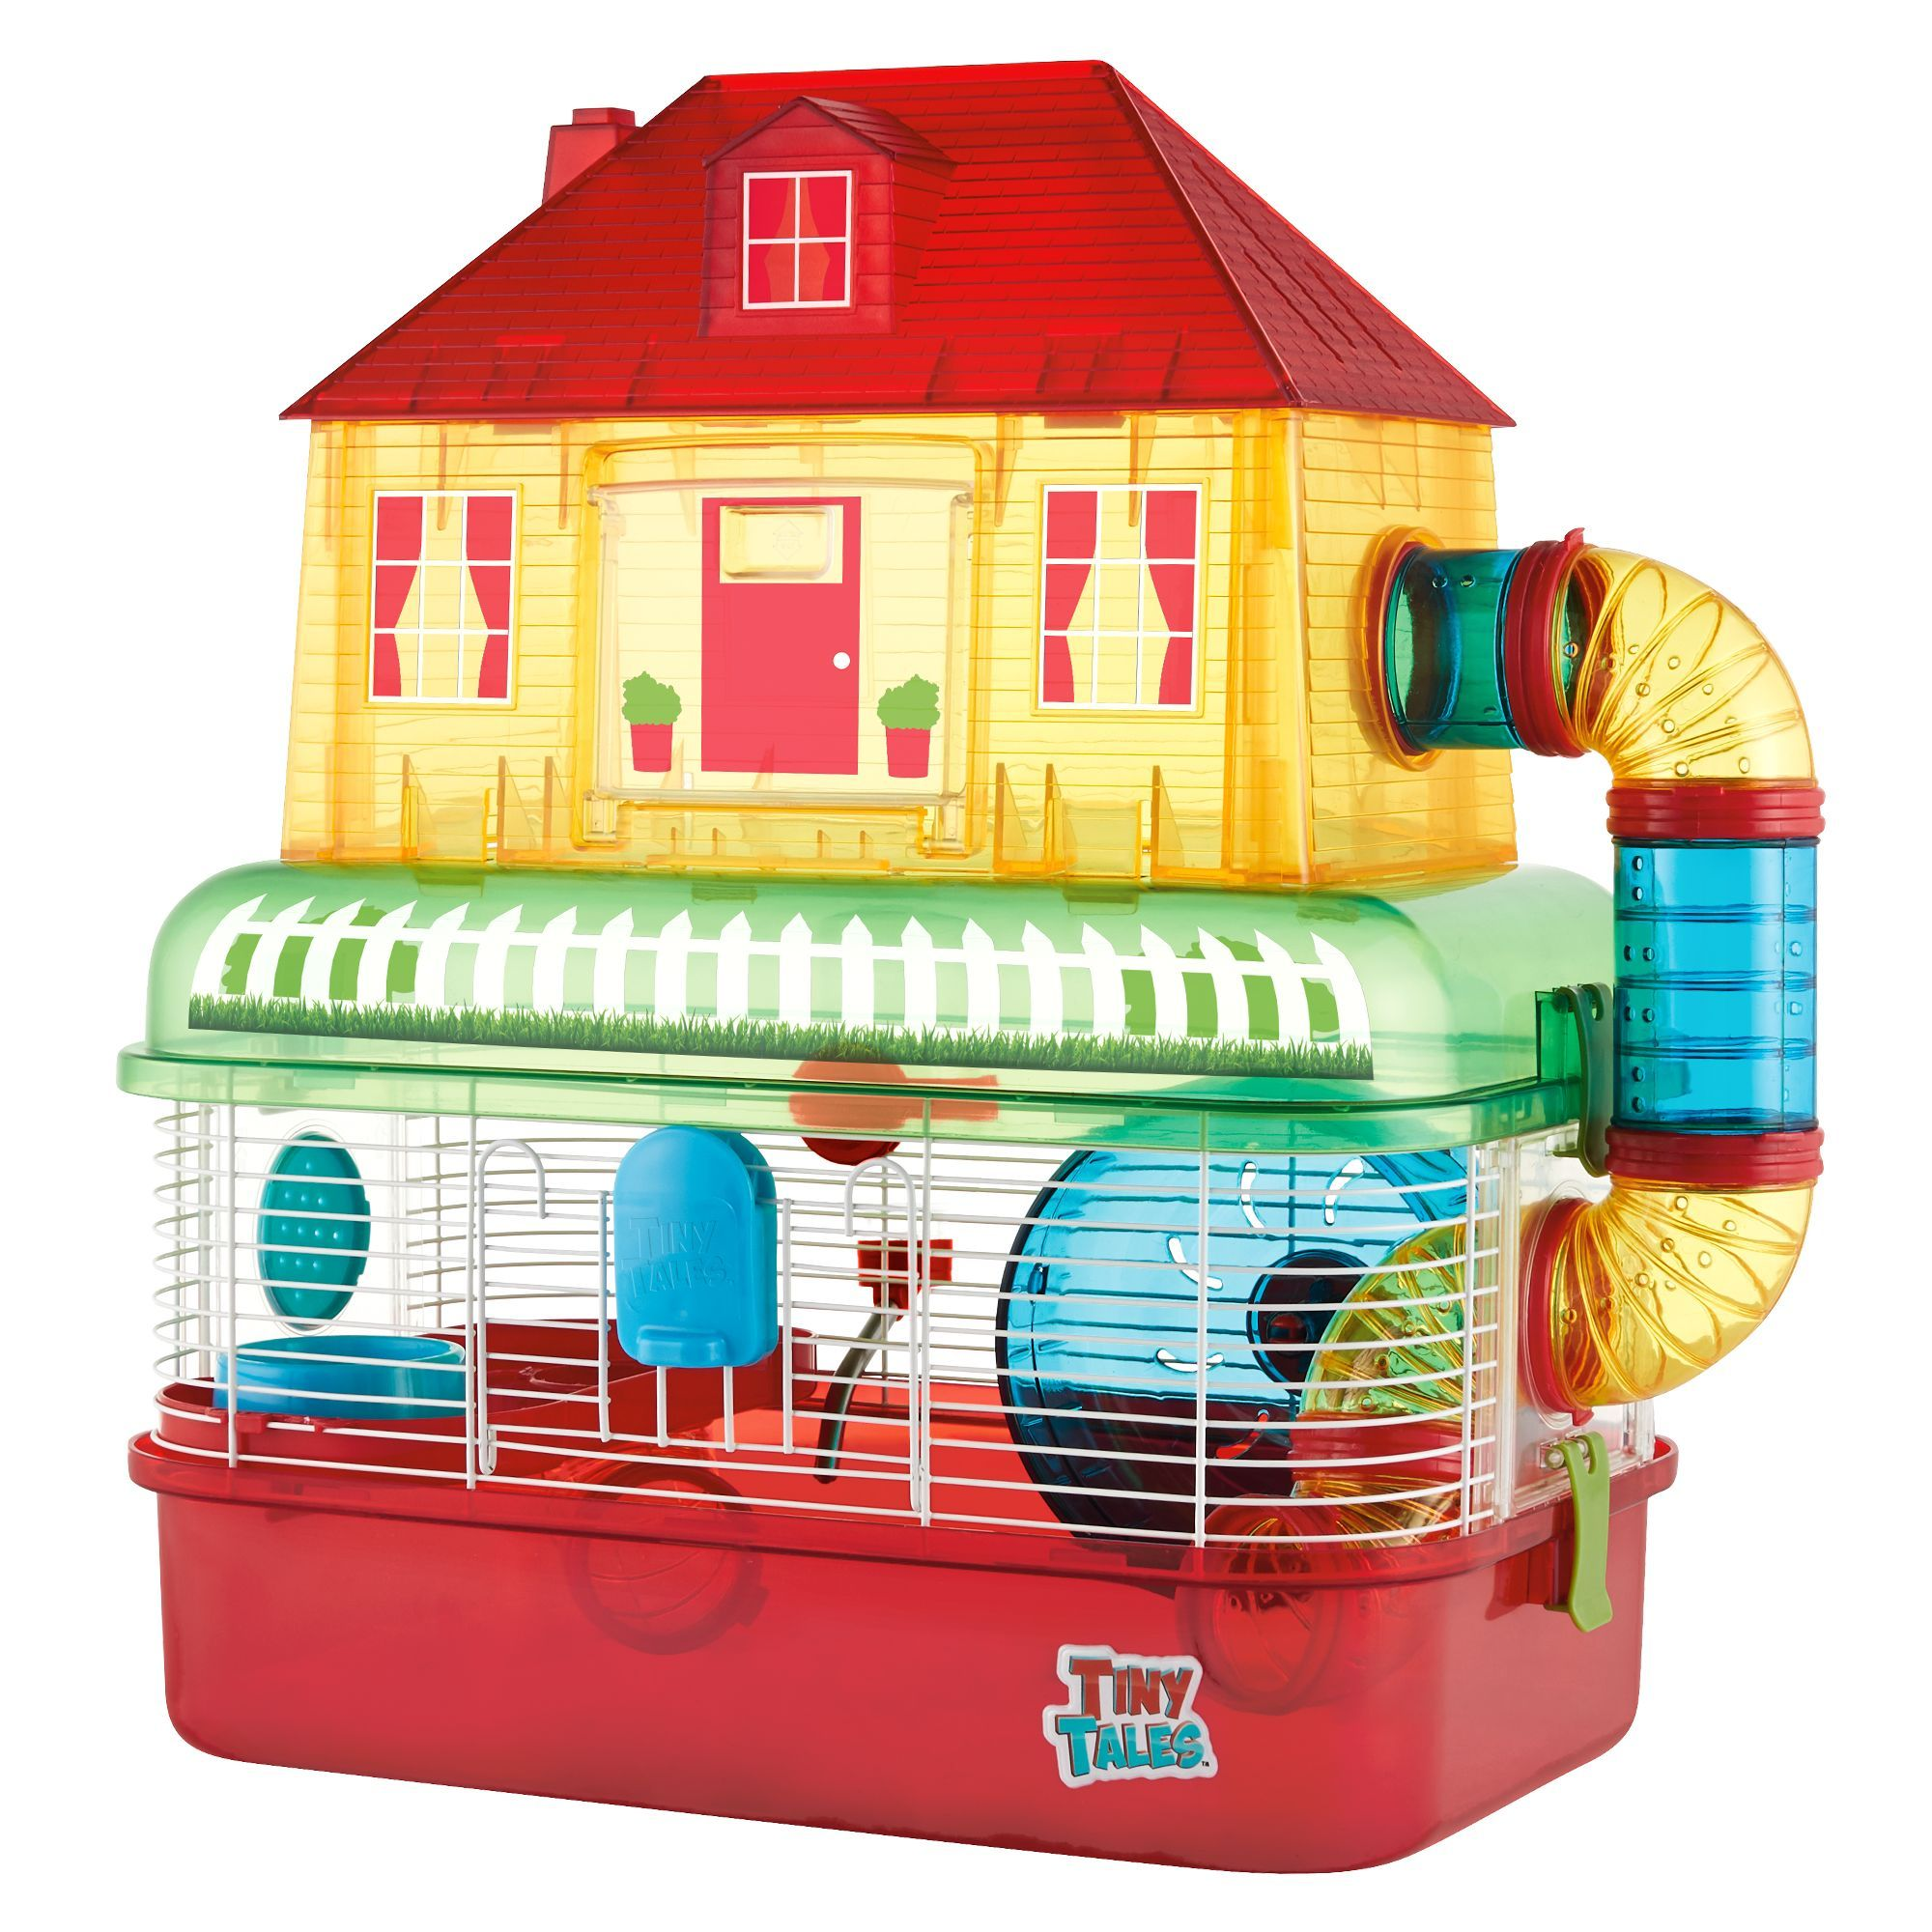 All Living Things Tiny Tales Comfy House Small Pet Habitat Hamster Cages Pets Pet Supplies